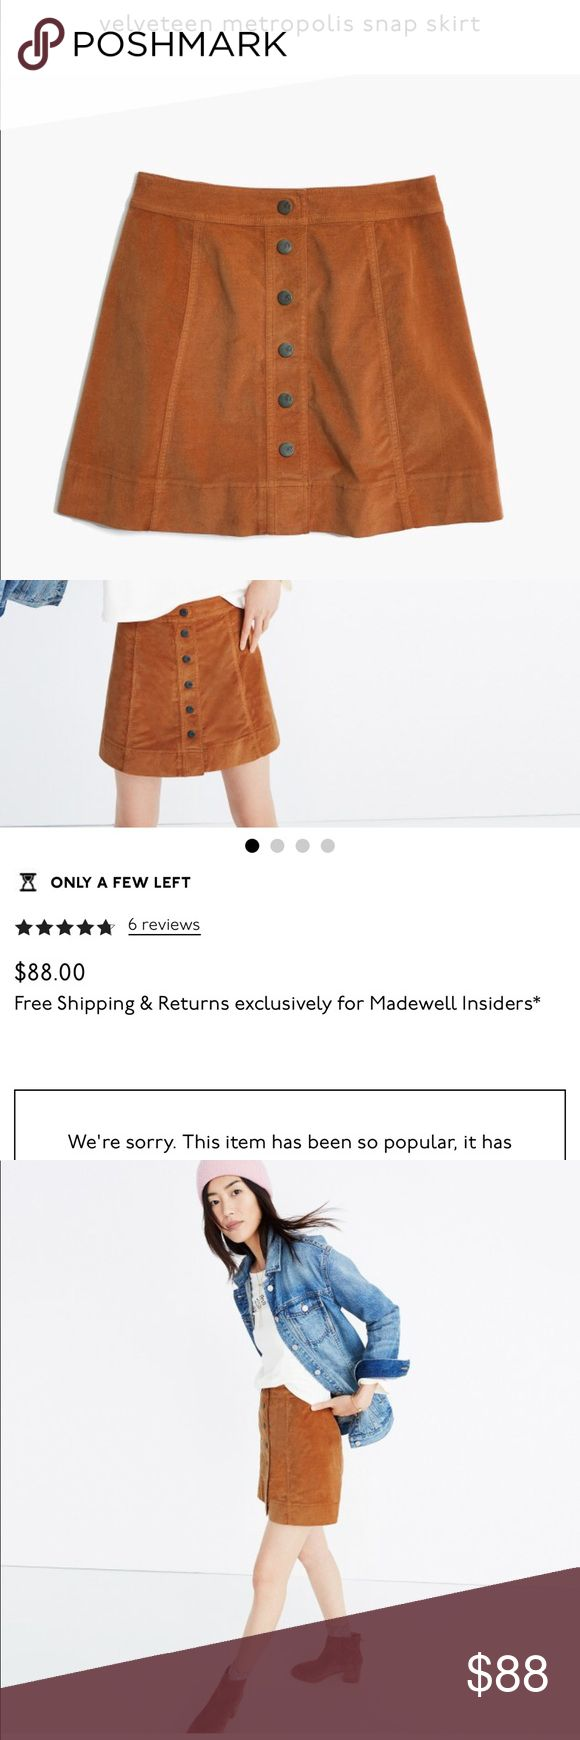 Madewell metropolis snap skirt size 6 Sold out at Madewell. New with tags. Velvet material snap closure. Color is rust/burnt orange. Size 6. I should've bought a 4 and when I went to exchange they were sold out 👎🏻 Madewell Skirts Mini